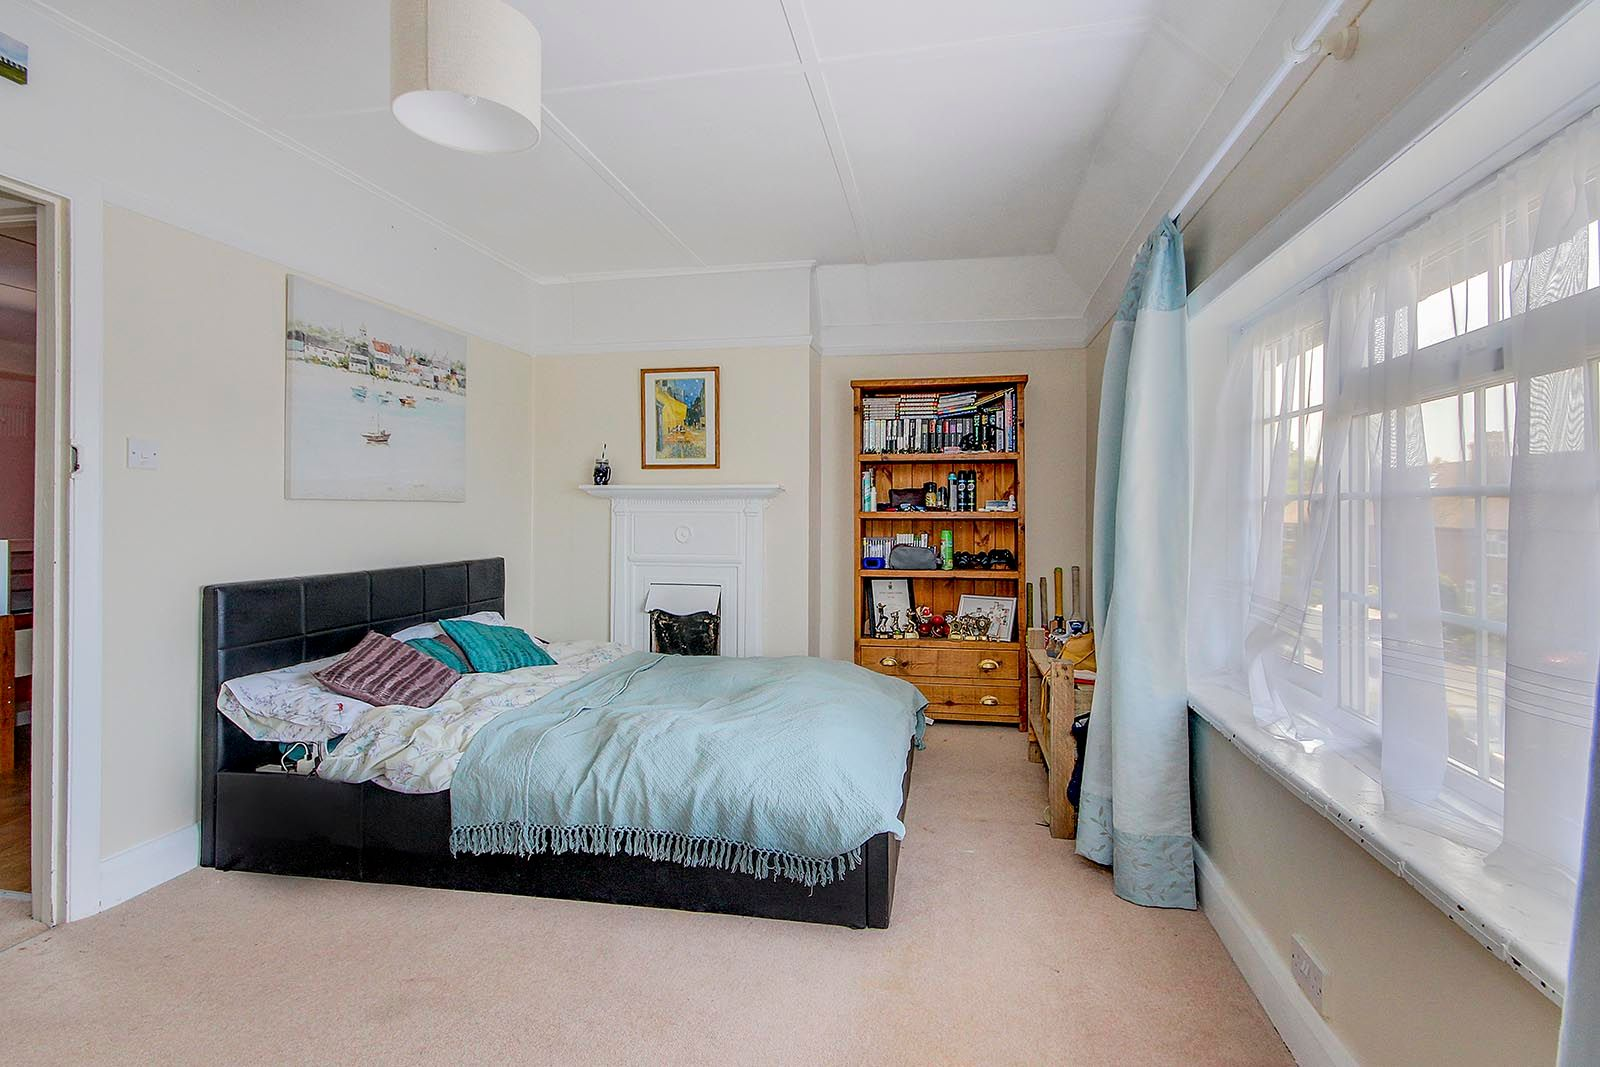 3 bed house for sale in Clapham Common 5